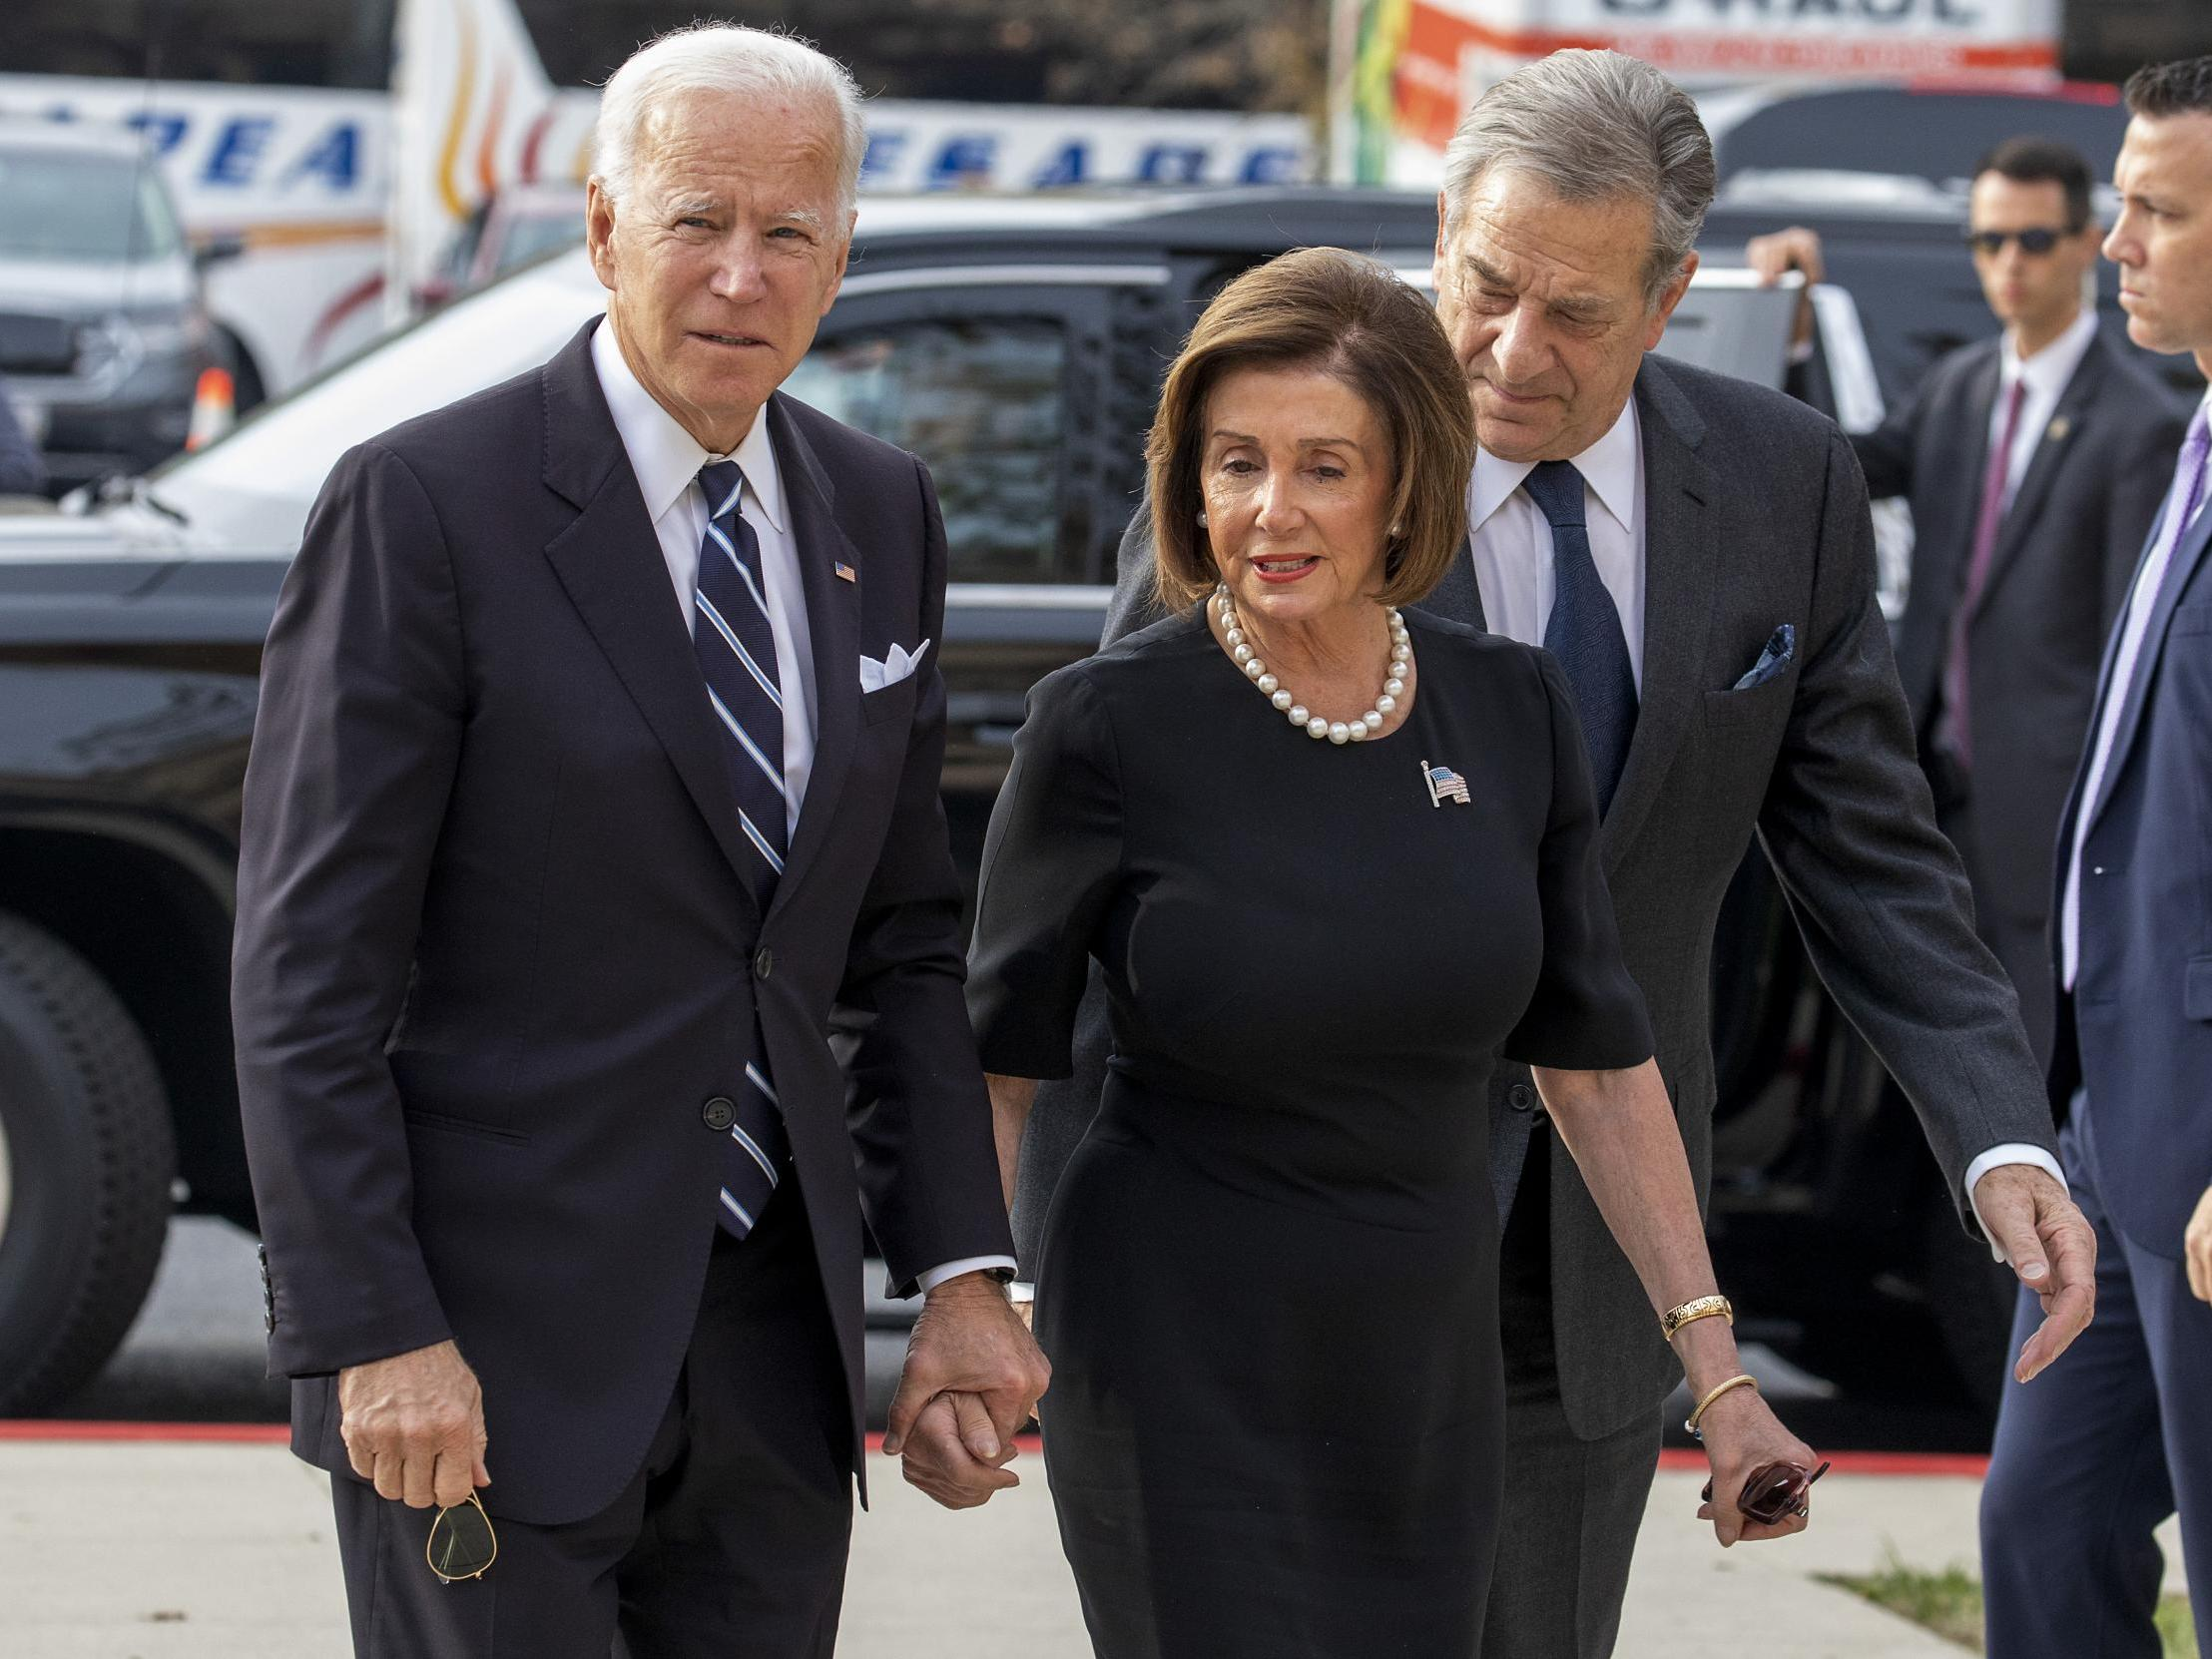 Nancy Pelosi latest high-profile female Democrat to back Joe Biden over sexual assault accusations photo